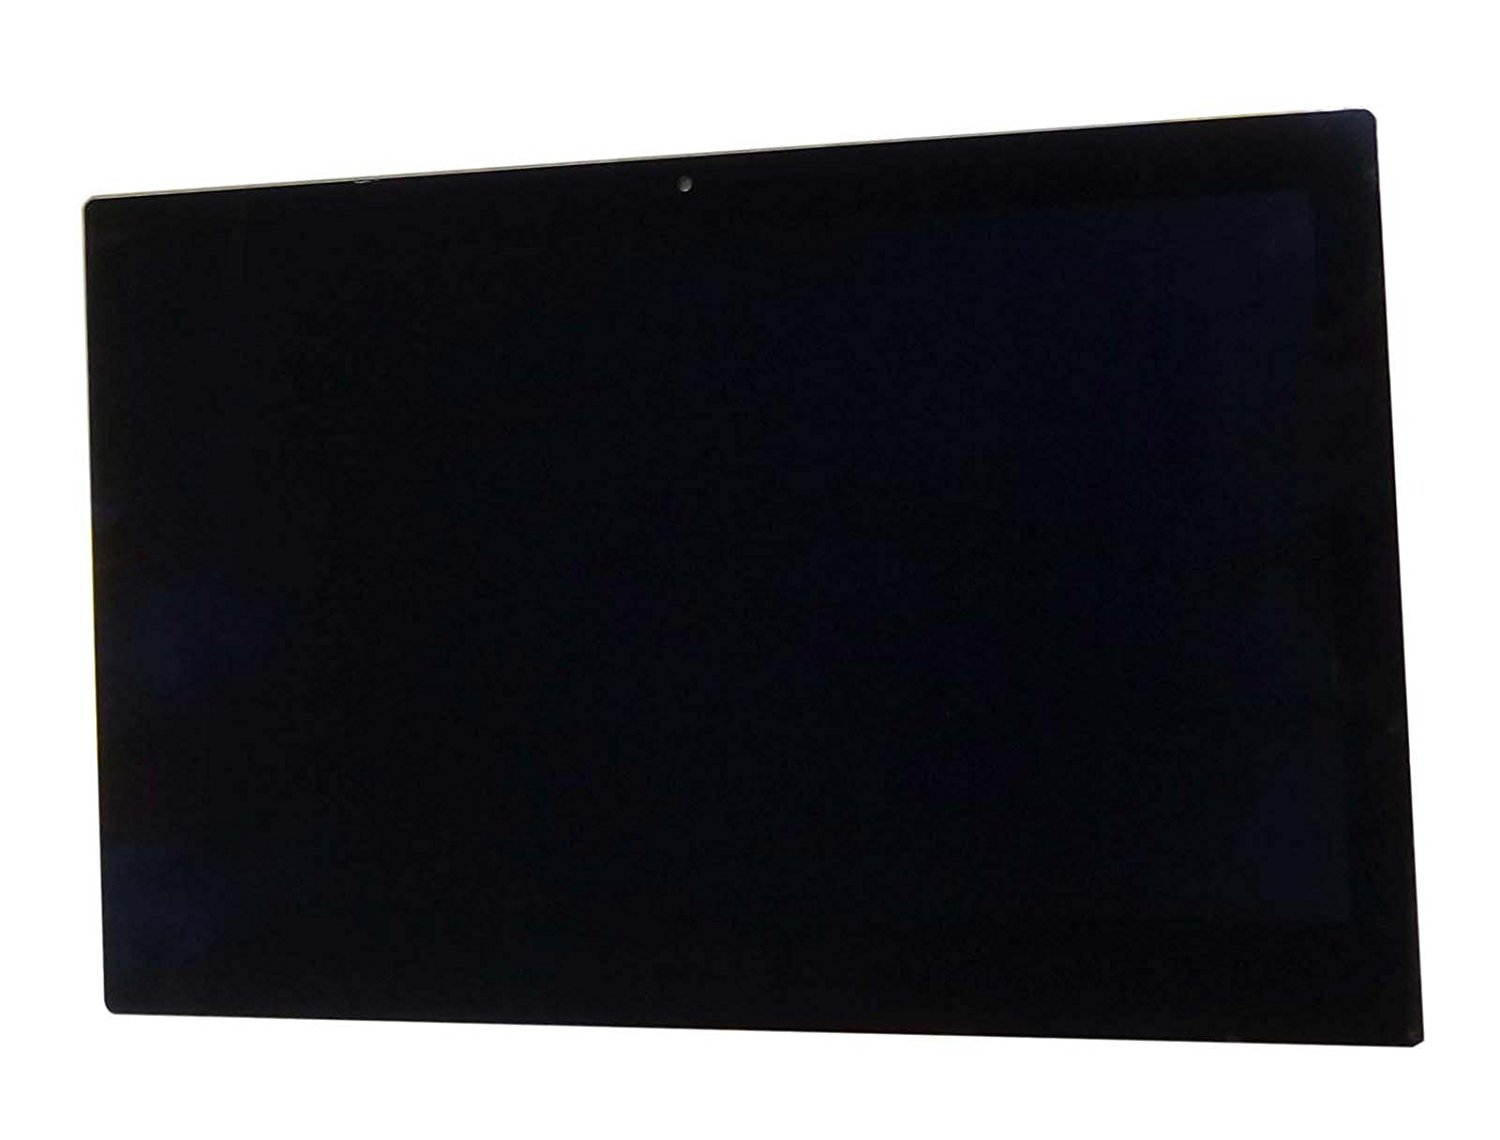 11.6-Inch 1366x768 Touch Digitizer Panel Front Glass & LCD Screen Replacement Assembly for Acer Chromebook R 11 CB5-132T-C32M (Without Bezel)